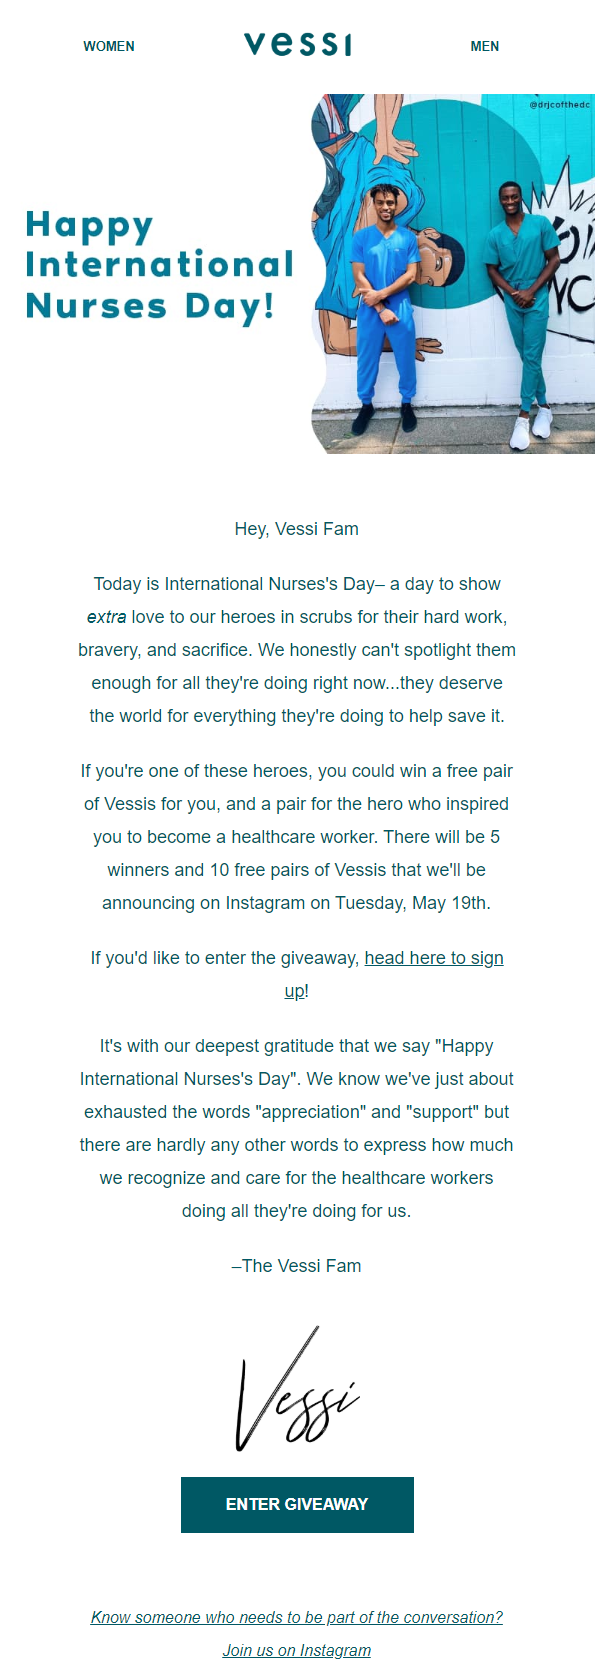 vessi-footwear-happy-international-nurses-day